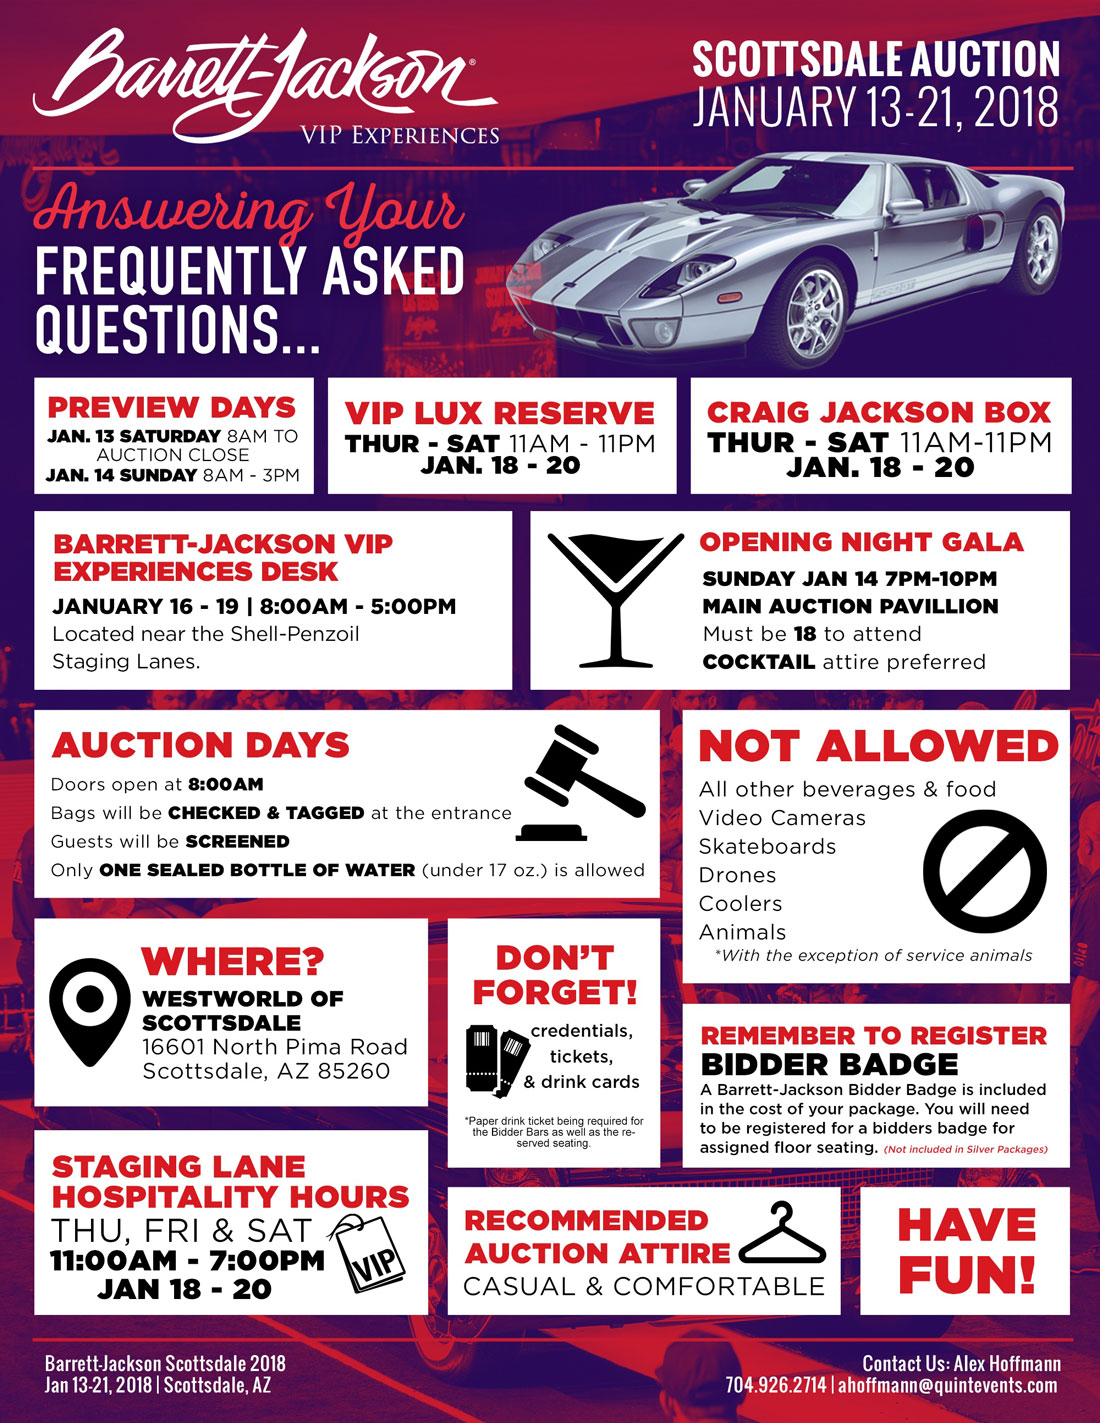 Barrett-Jackson Scottsdale Frequently Asked Questions